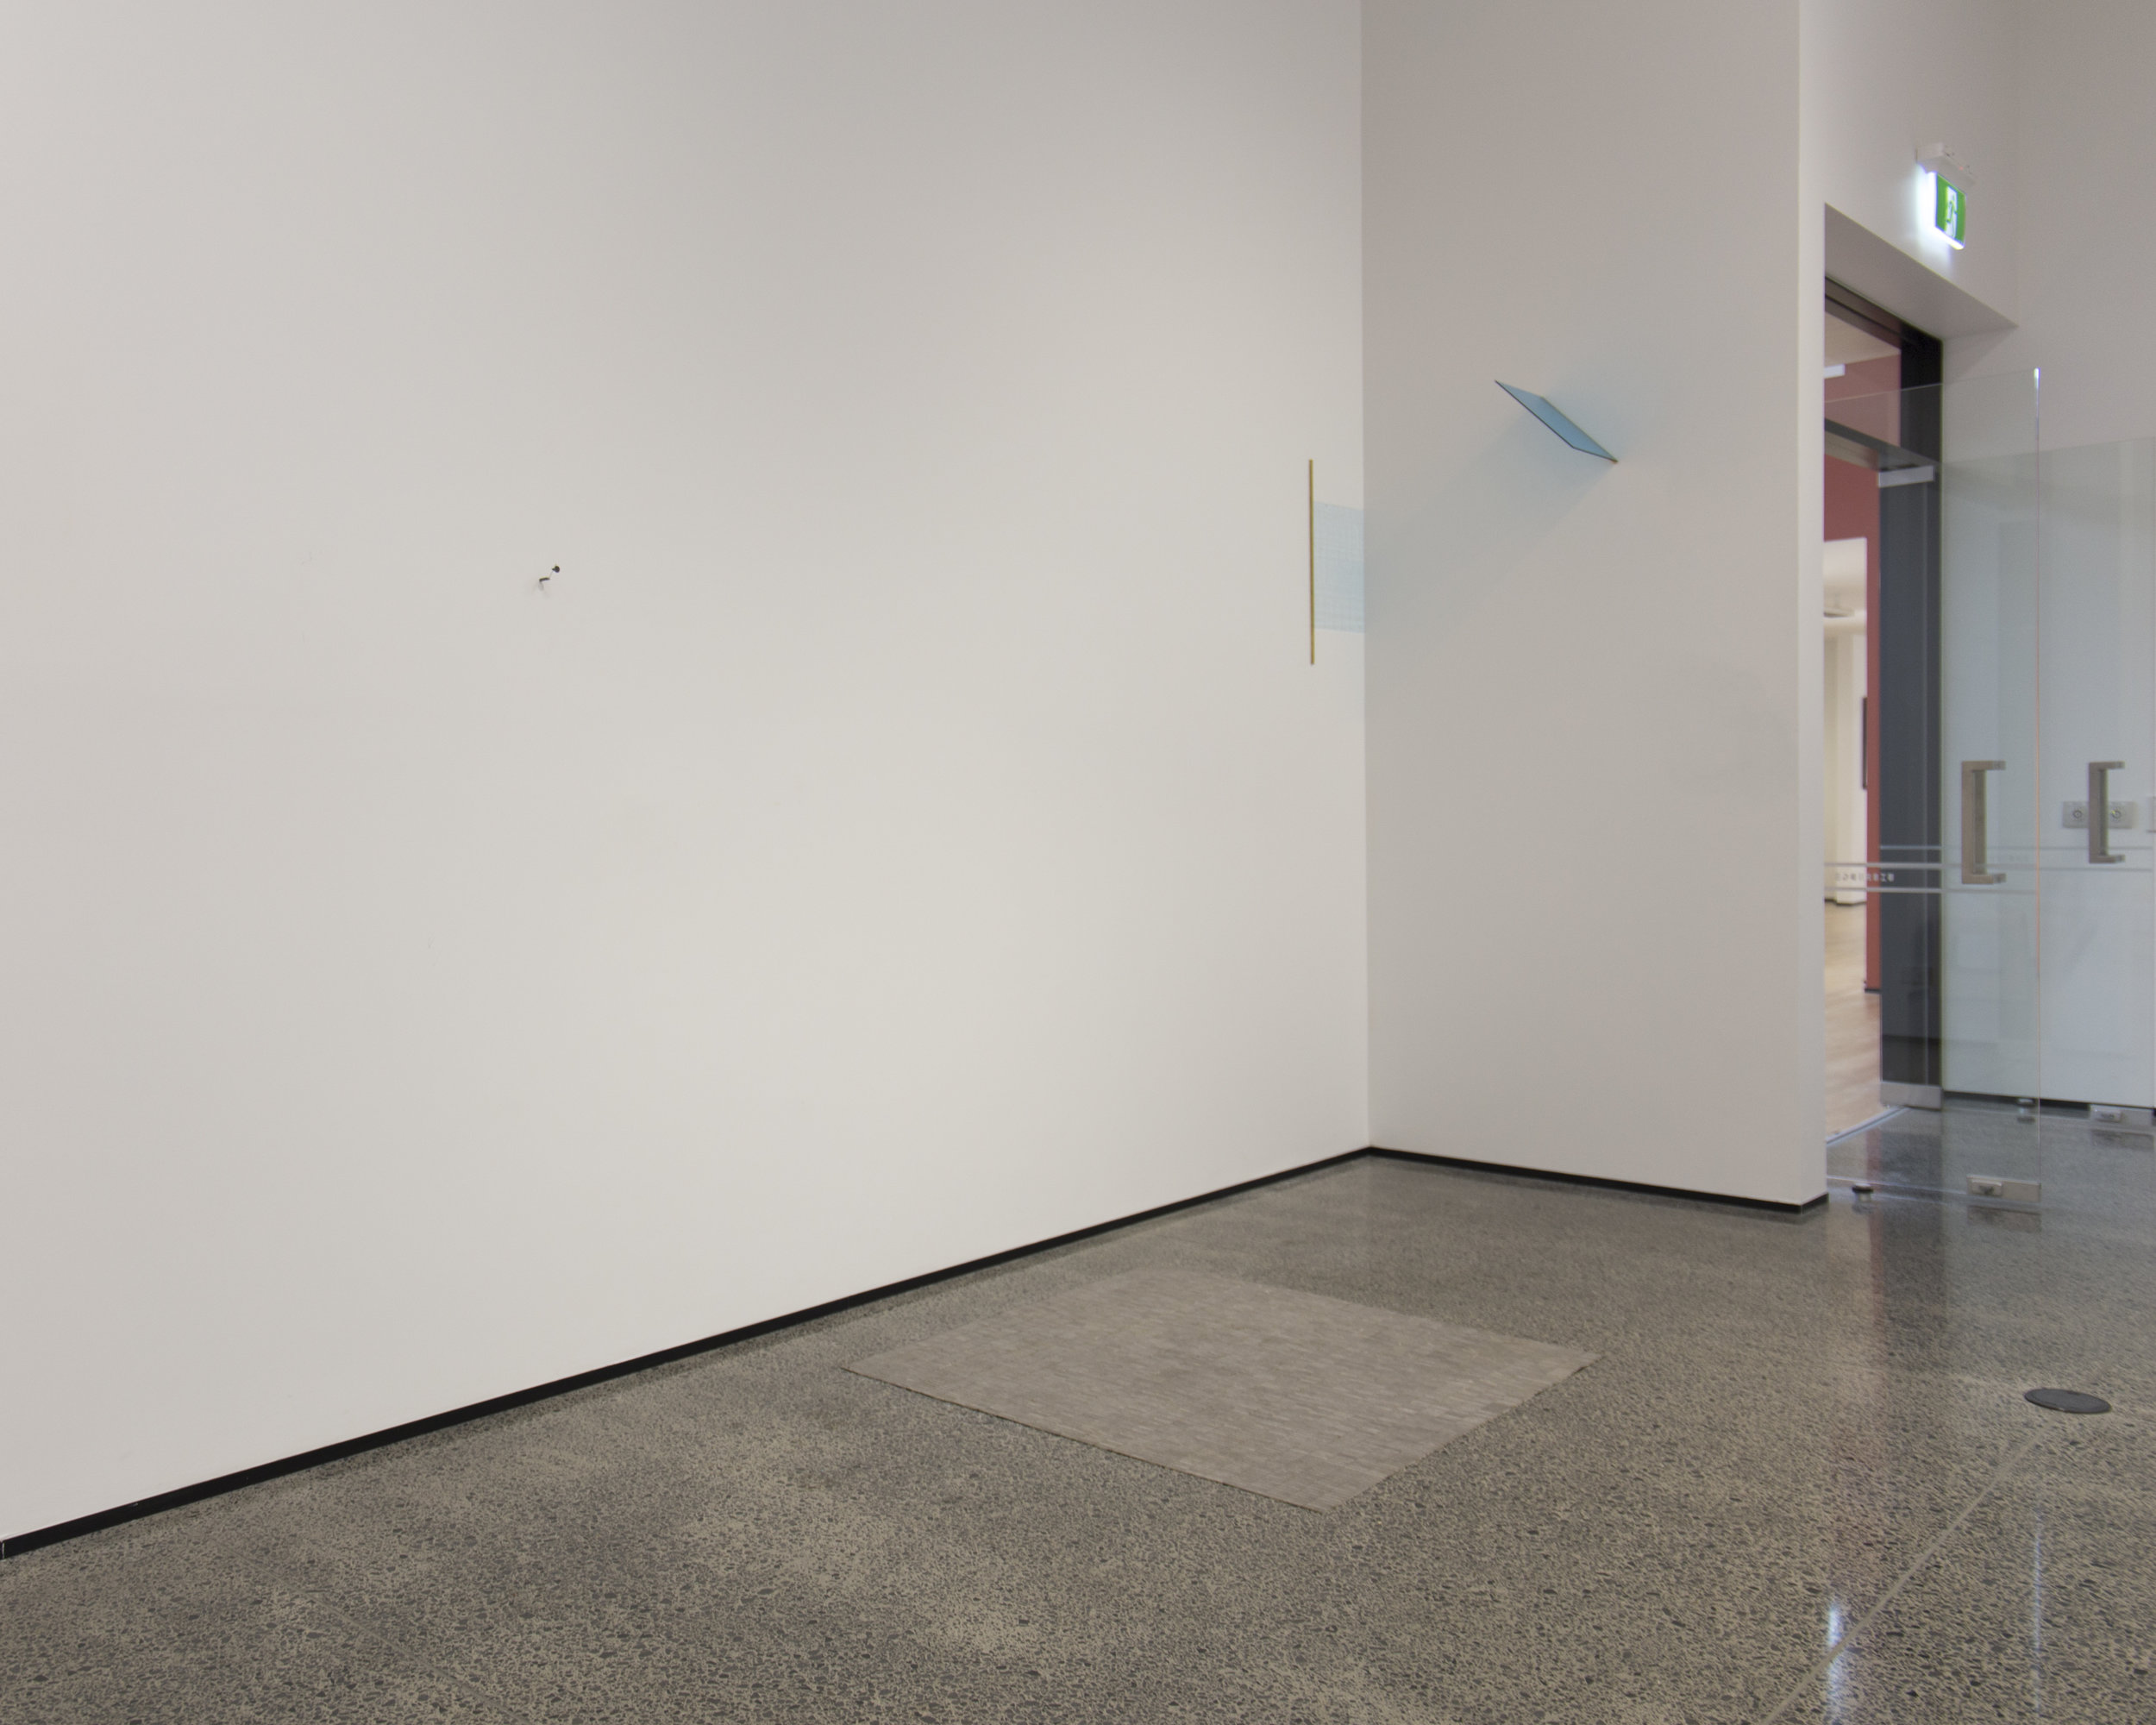 Left to right: Richard Frater,  Anne , 2012; Katrina Beekhuis,  Lino floor mat , 2016; Sarah Smuts-Kennedy,  Subtle Field 1 , 2014